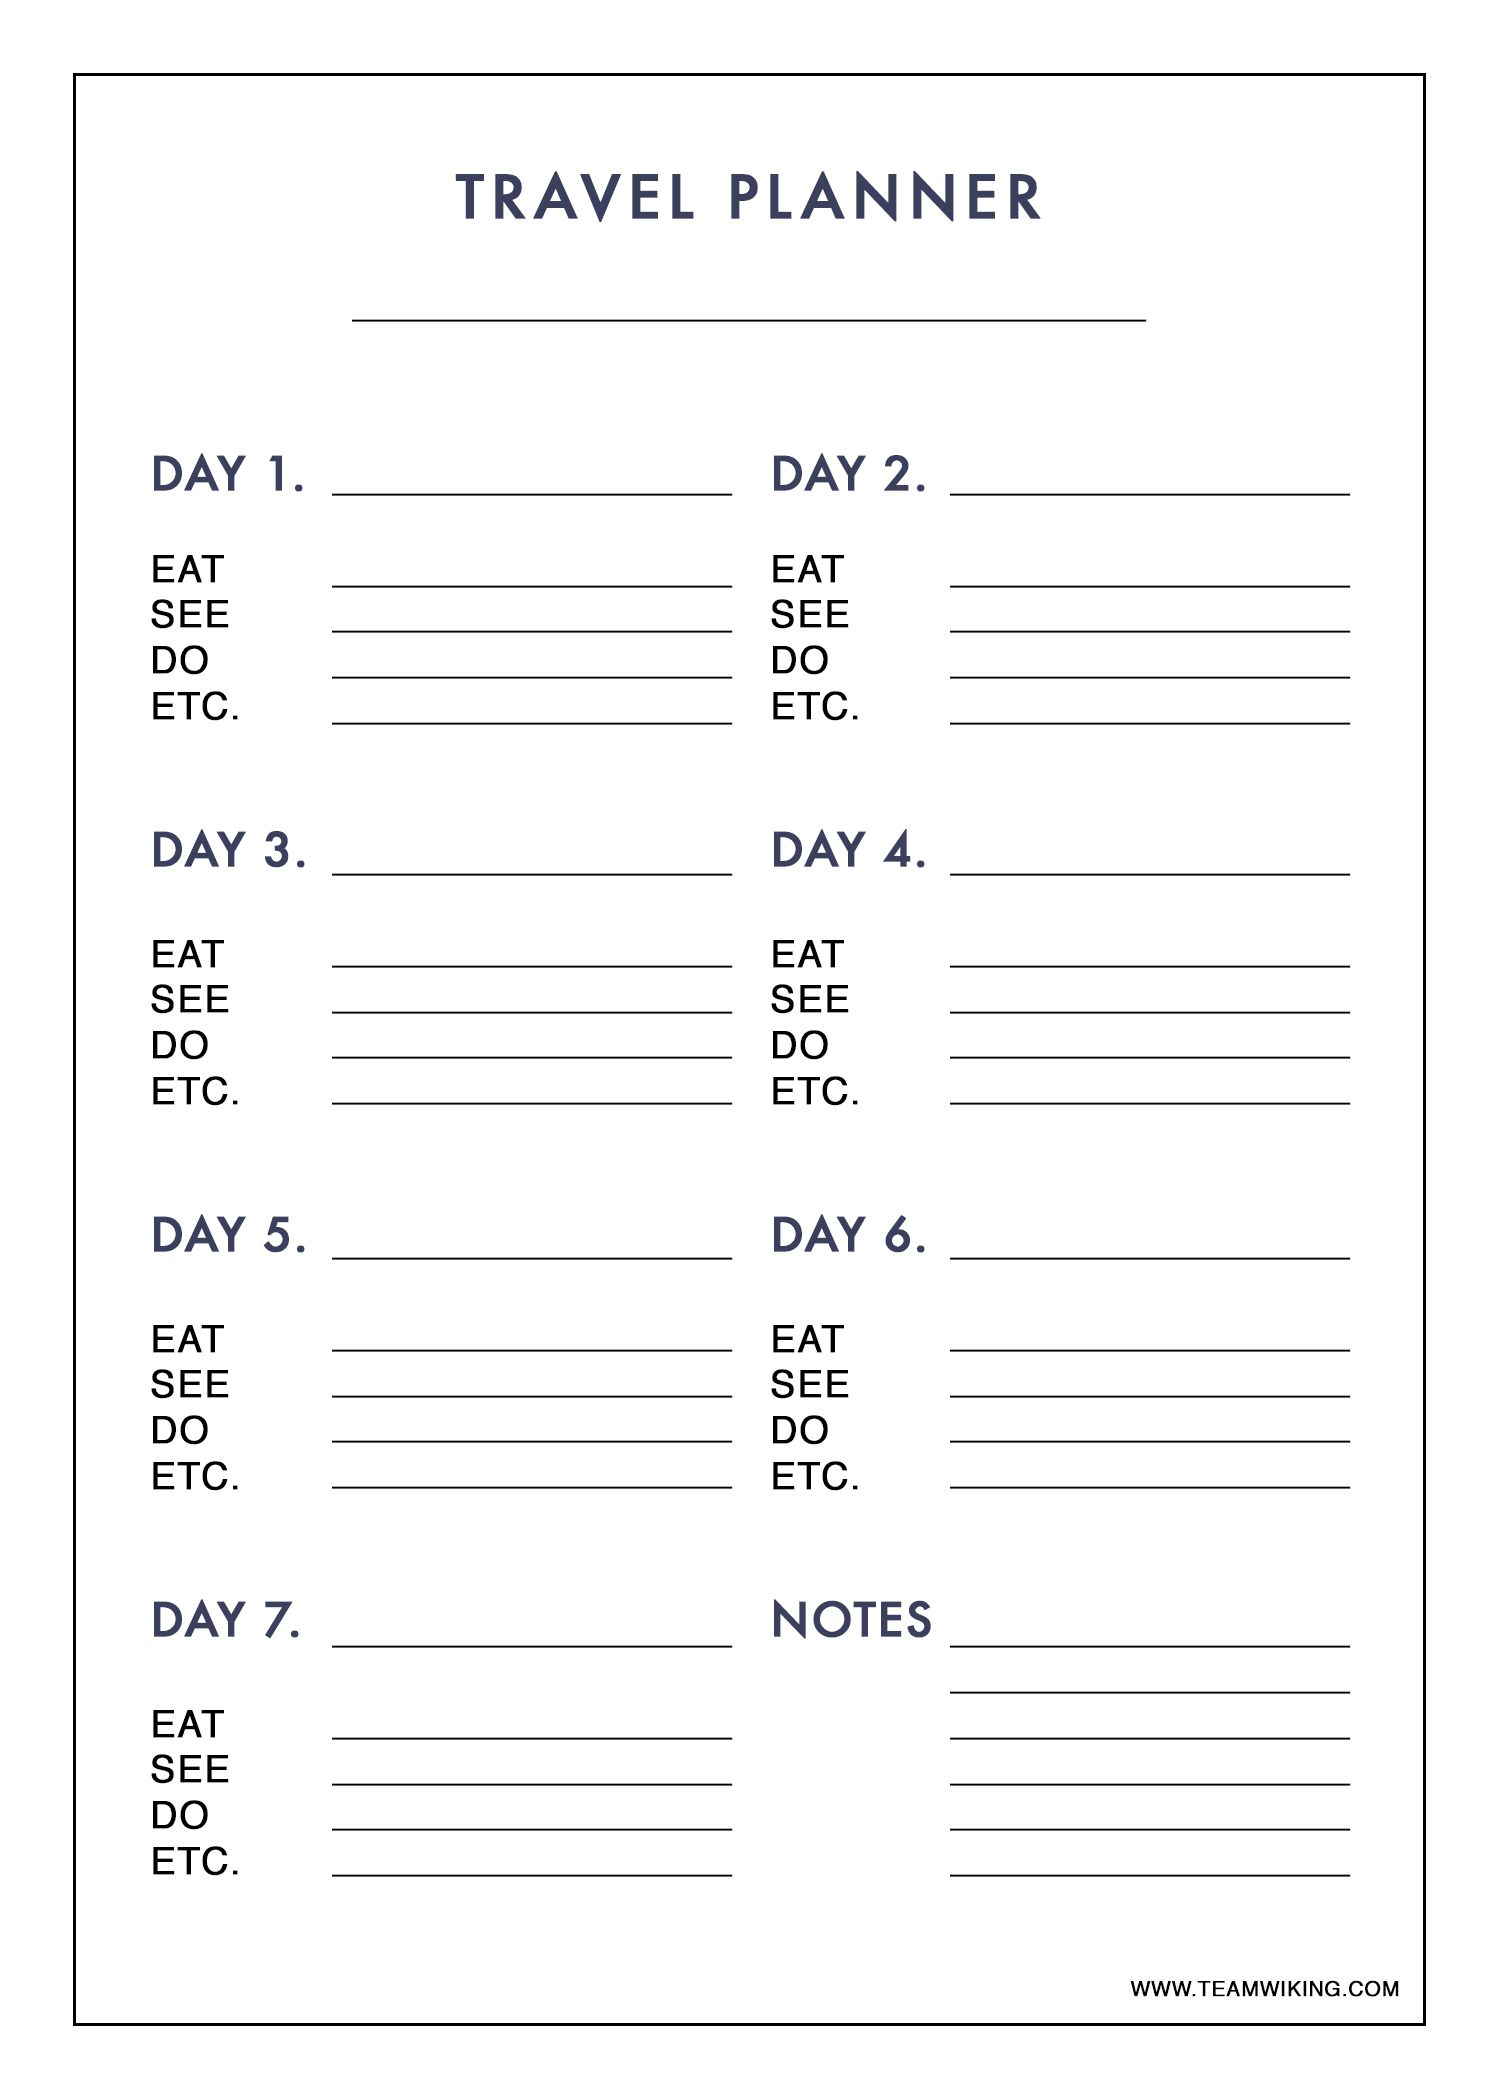 Free Printable 7 Day Travel Planner (Use To Plan Outfits - Packing - Free Printable Trip Planner